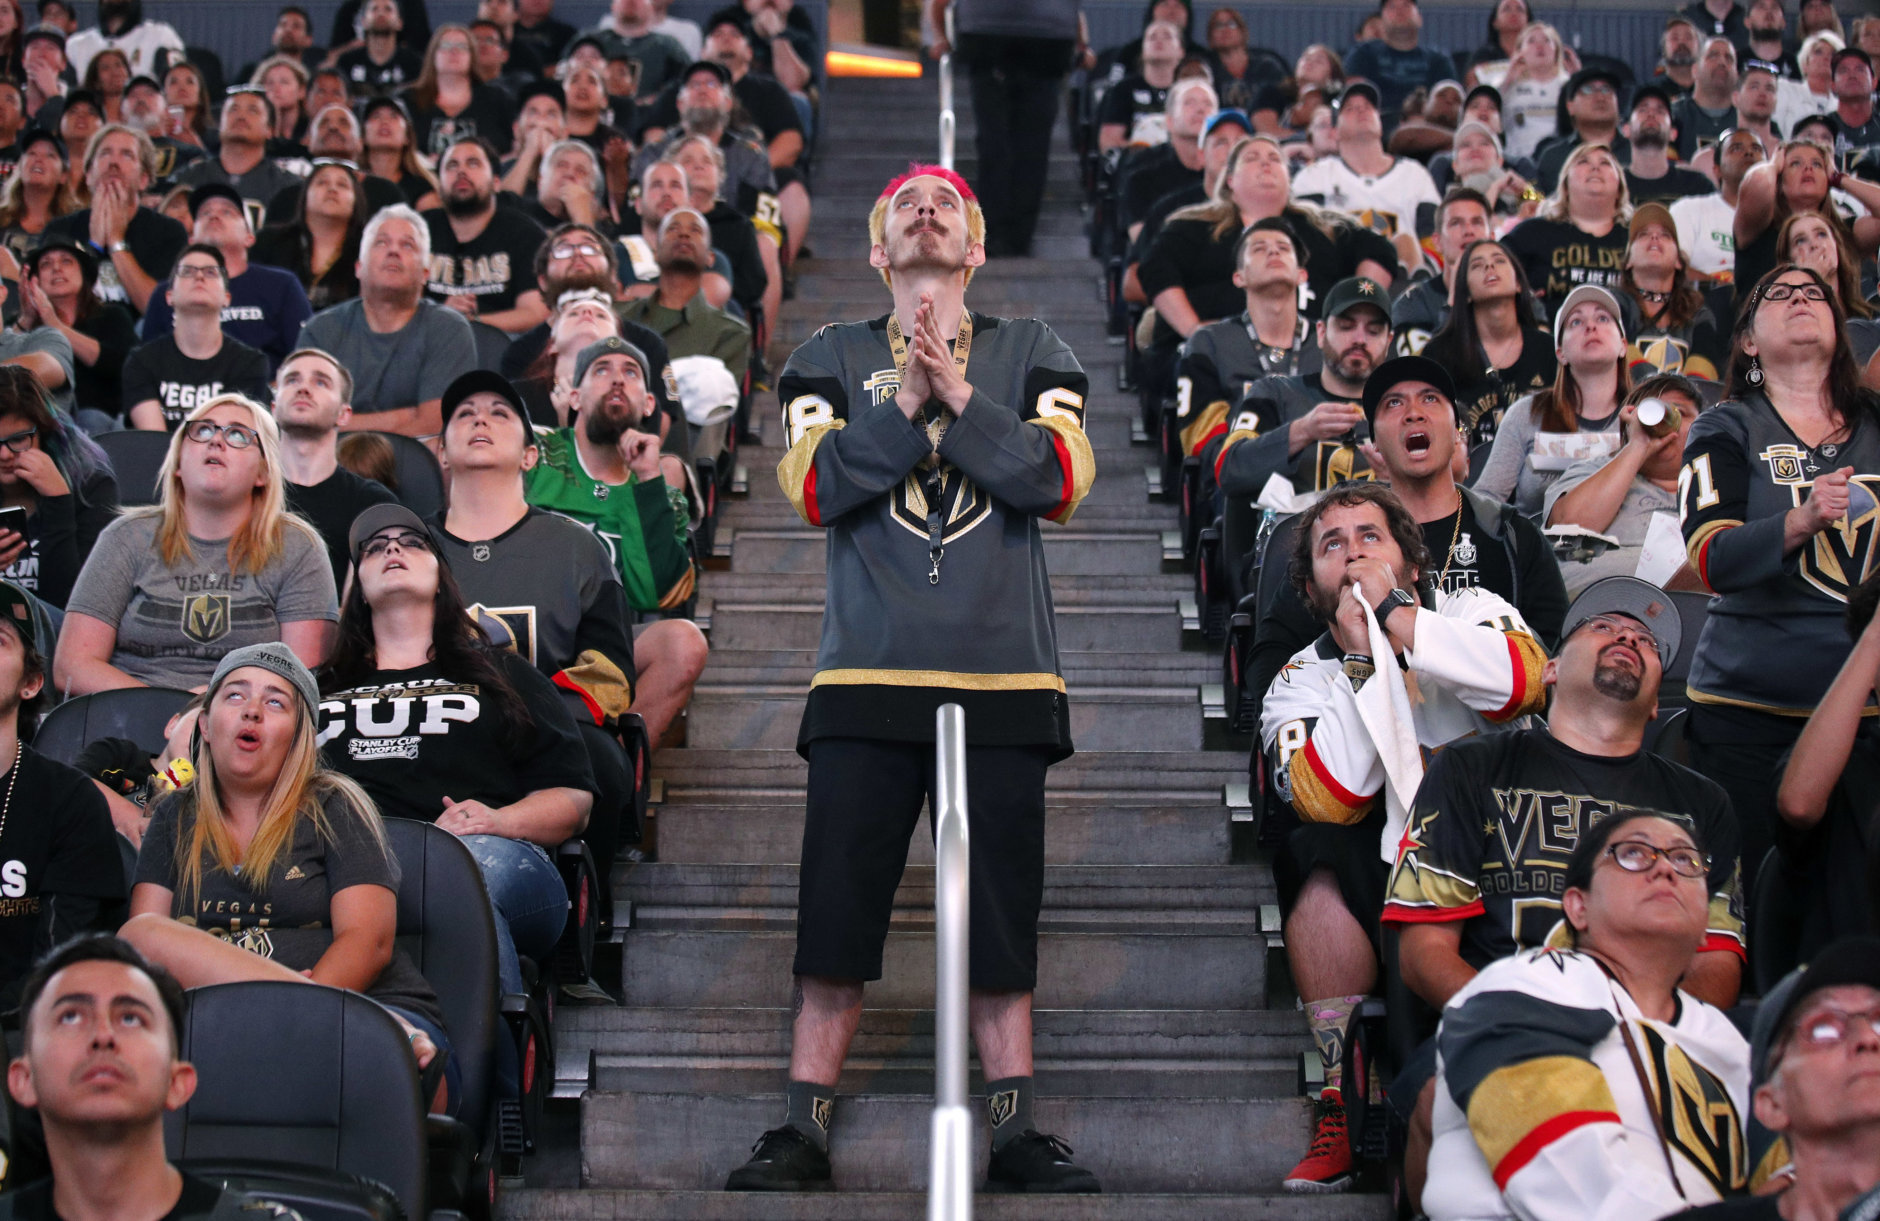 Jay Bryant-Chavez, center, reacts after a play during a watch party for Game 4 of the NHL hockey Stanley Cup Final between the Washington Capitals and the Vegas Golden Knights, Monday, June 4, 2018, in Las Vegas. (AP Photo/John Locher)